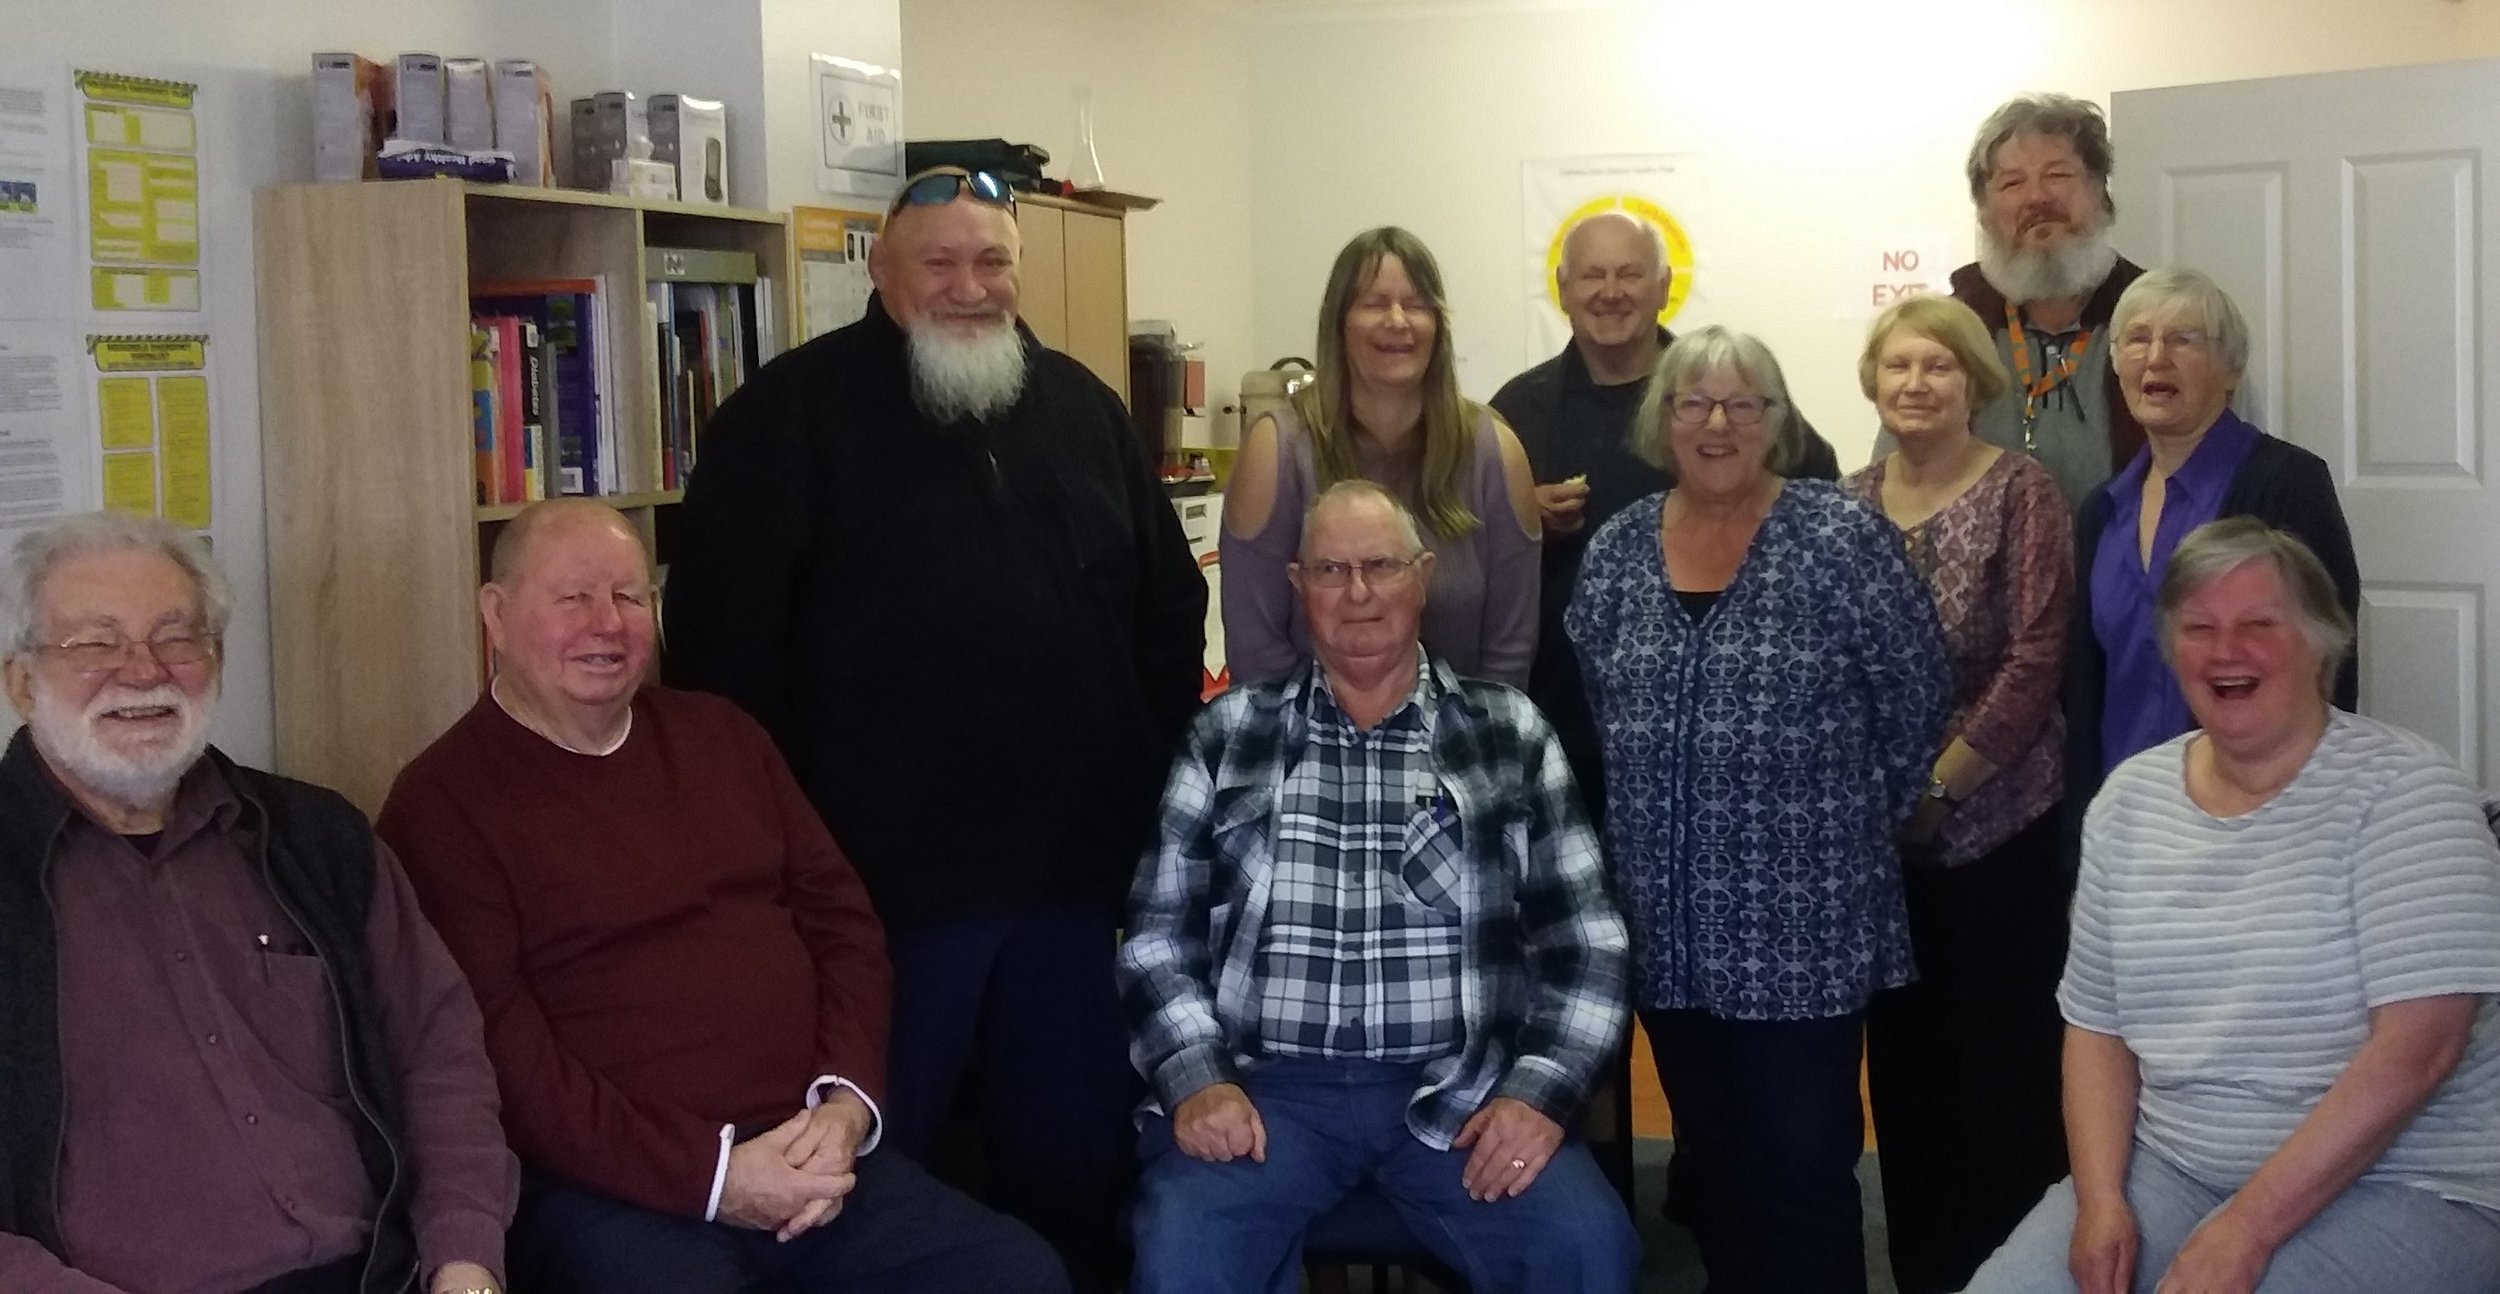 Trevor, second from left and Barbara, fourth from right, love attending their local diabetes support group